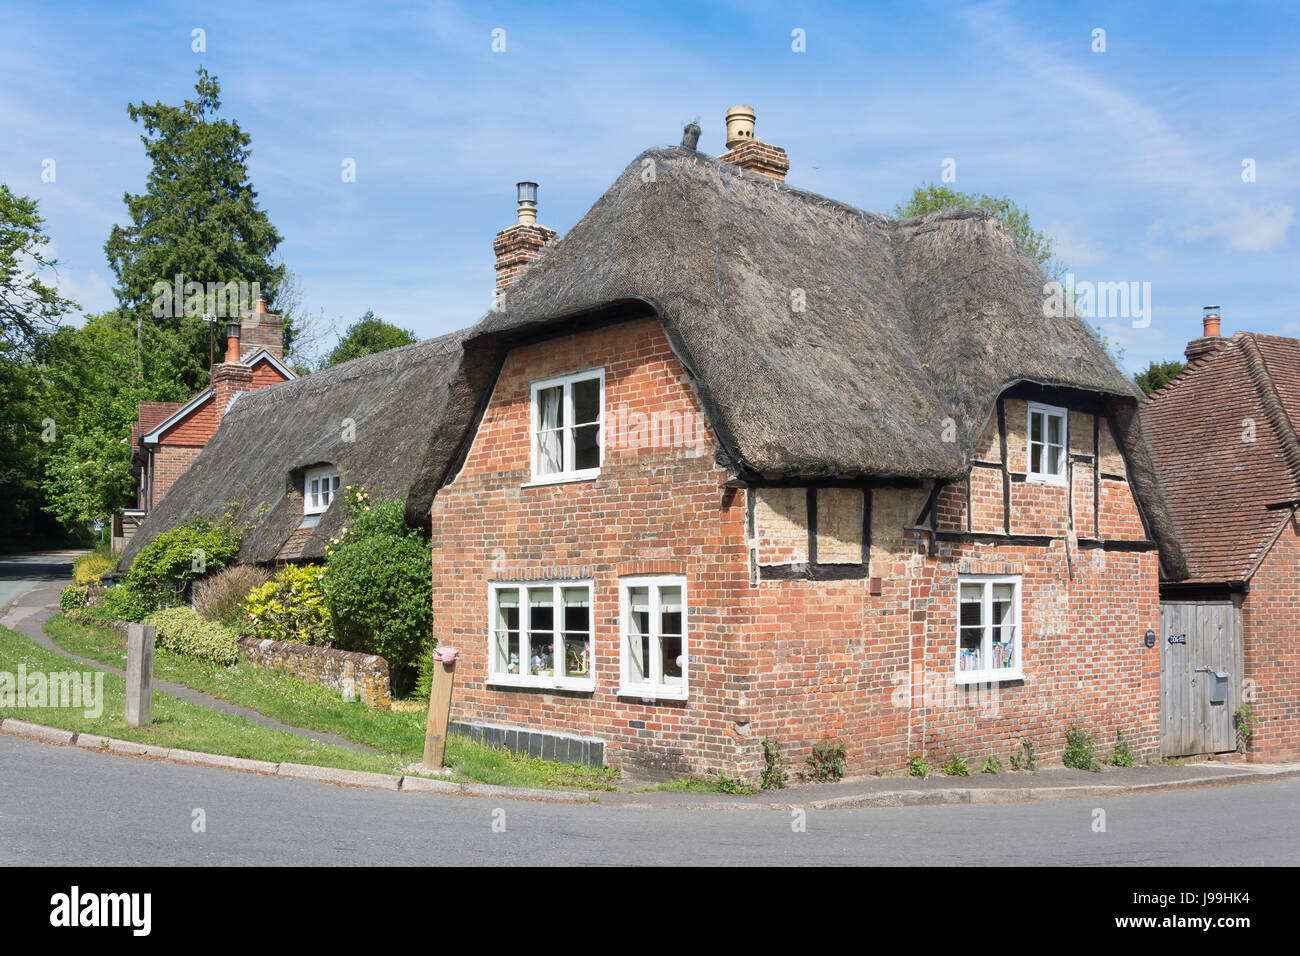 Thatched cottage, High Street, West Meon, Hampshire, England, United Kingdom - Stock Image